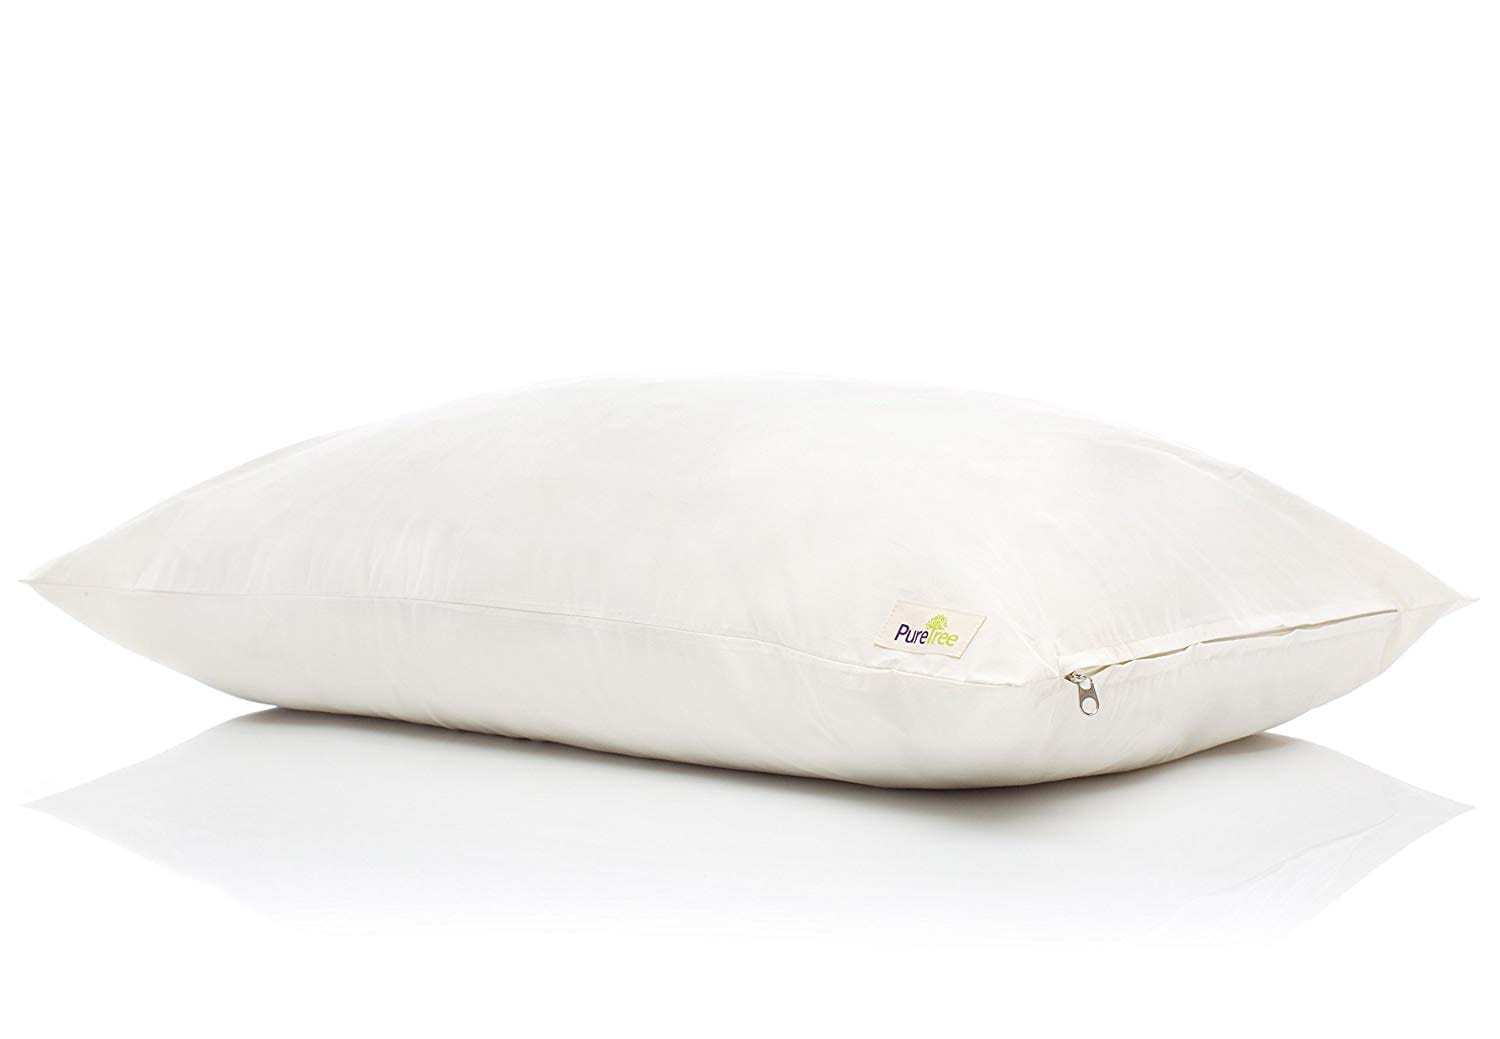 PureTree best latex pillow review by www.dailysleep.org